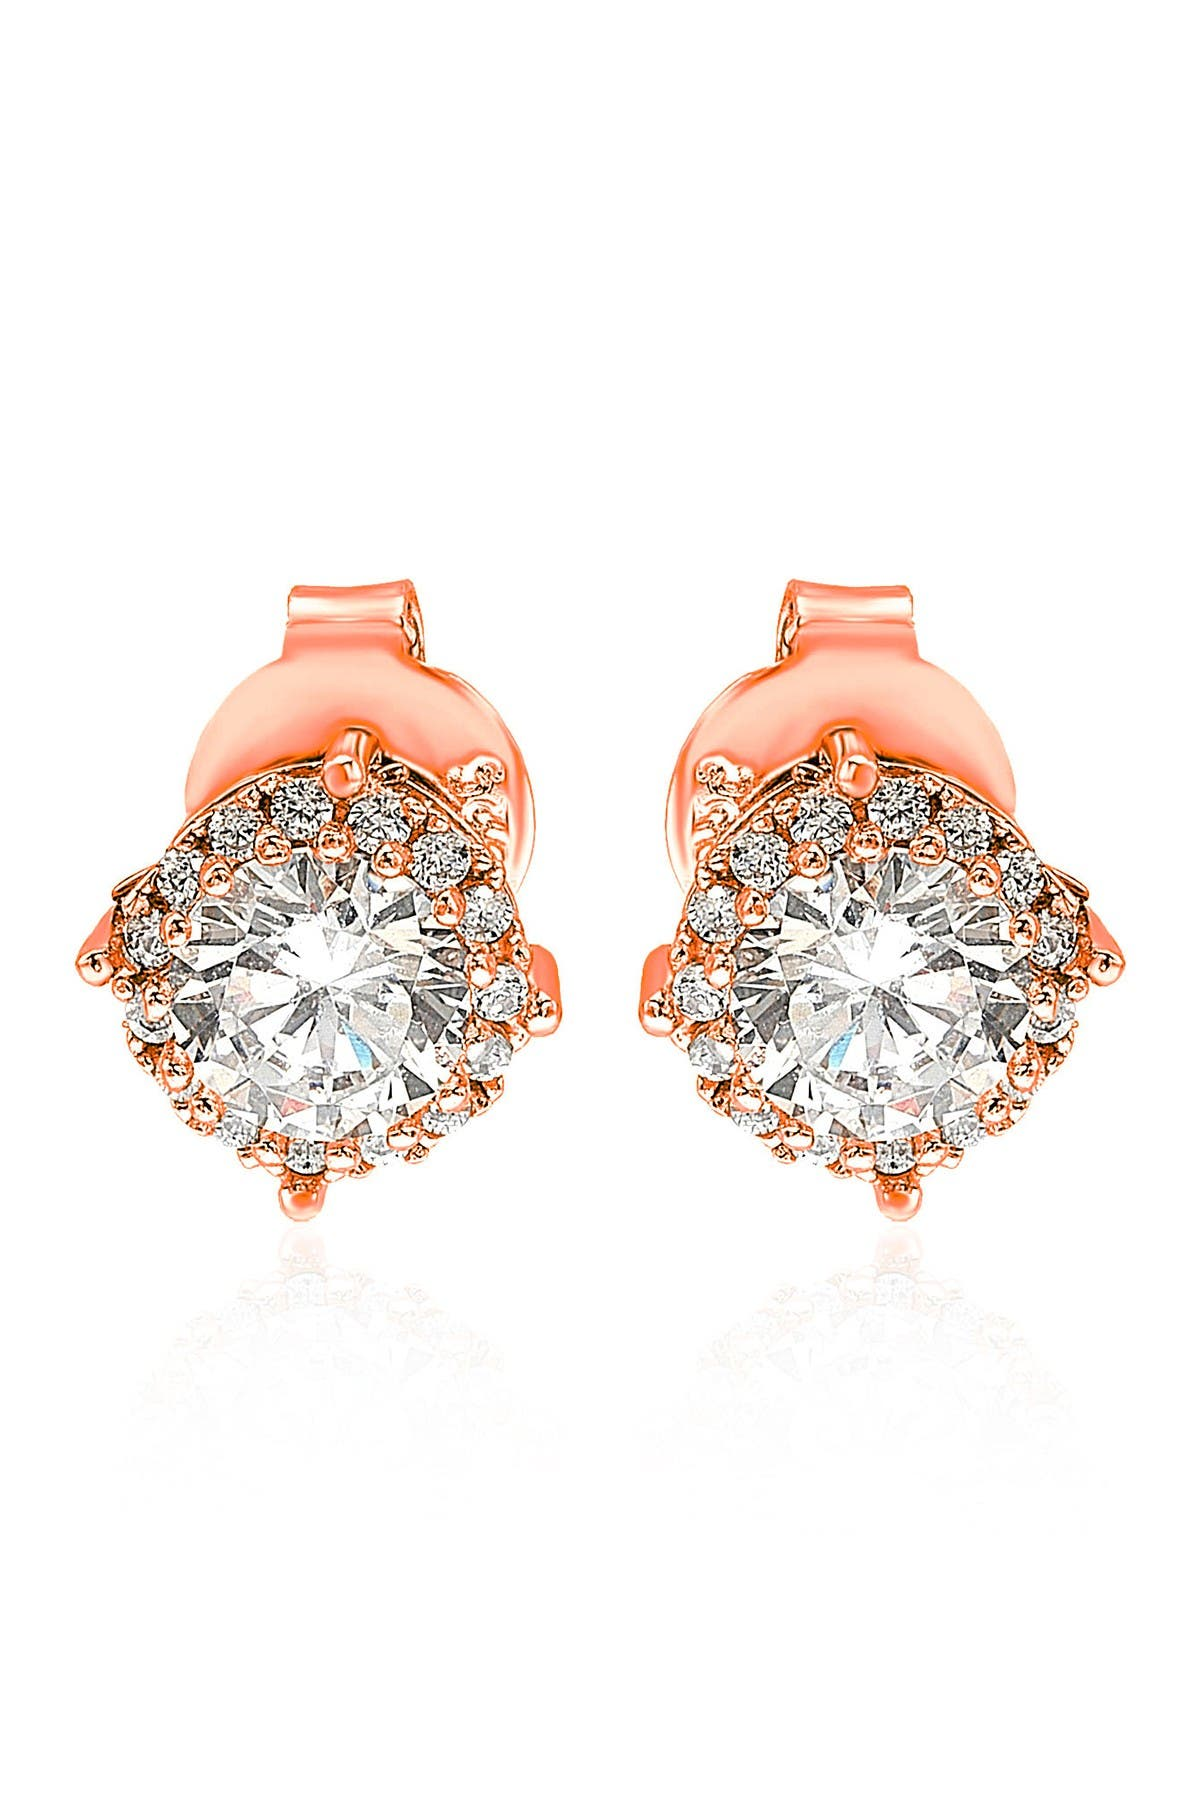 Image of Suzy Levian Rose Sterling Silver CZ Stud Earrings